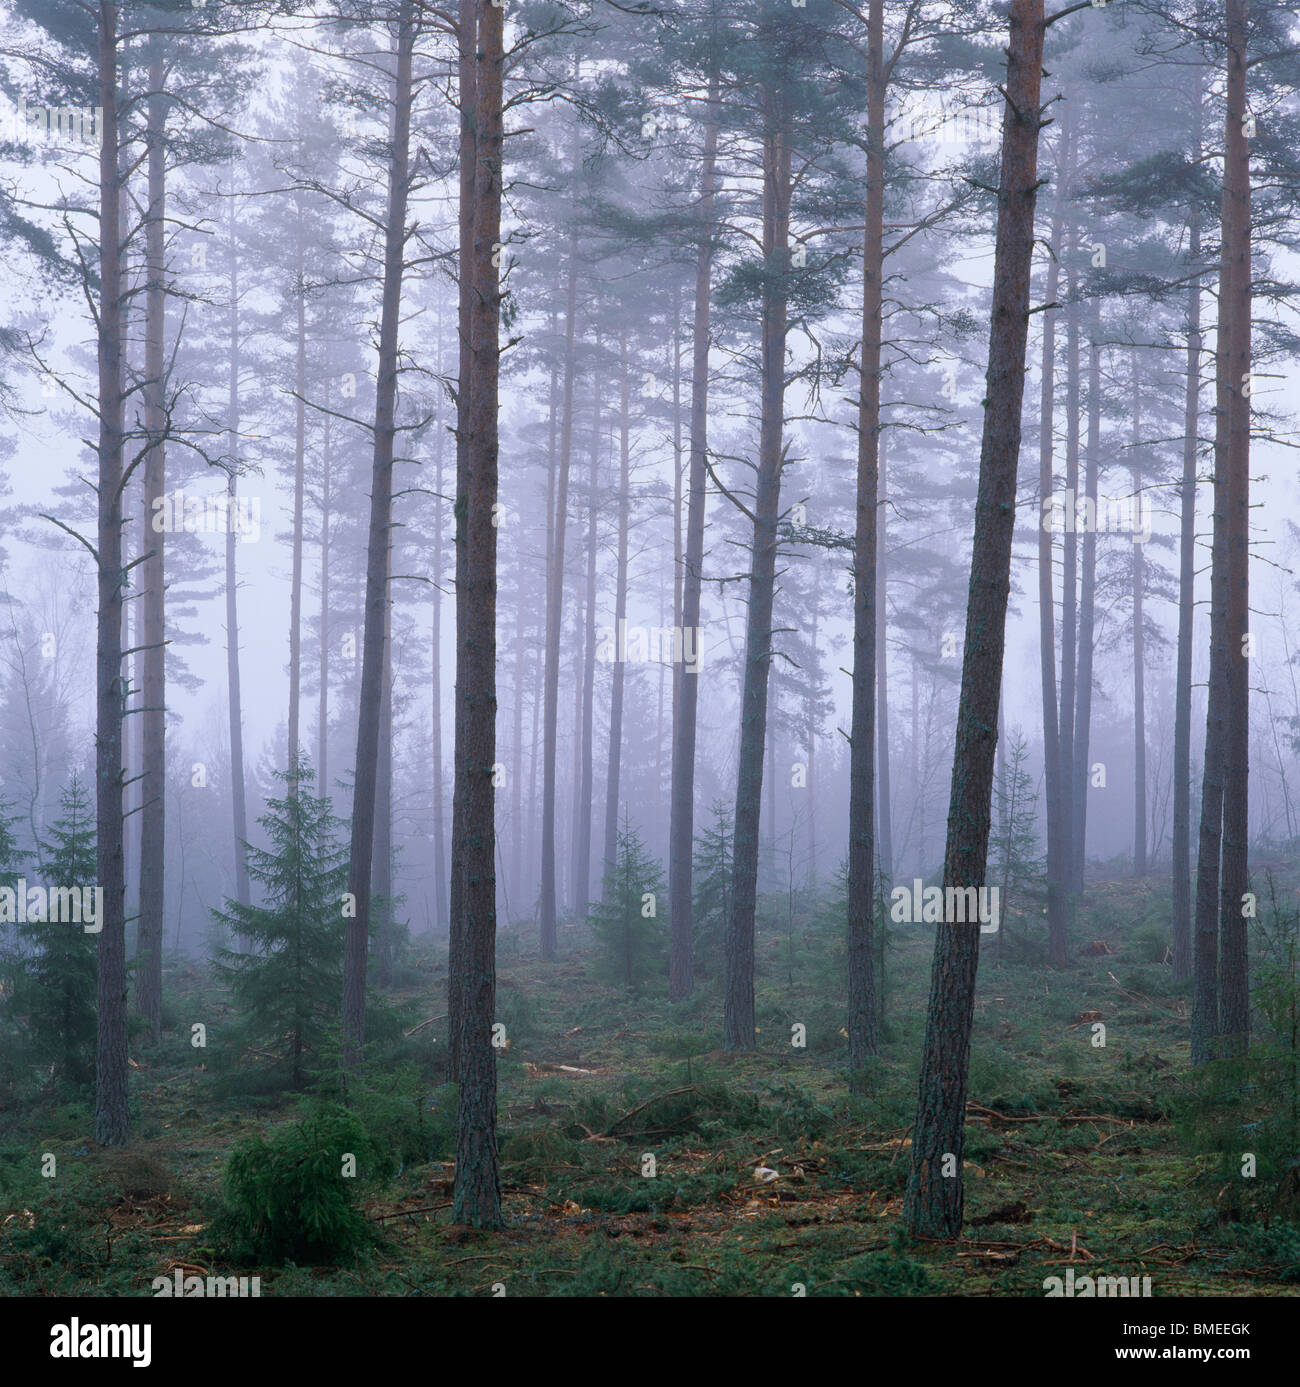 View of coniferous forest covered with fog - Stock Image